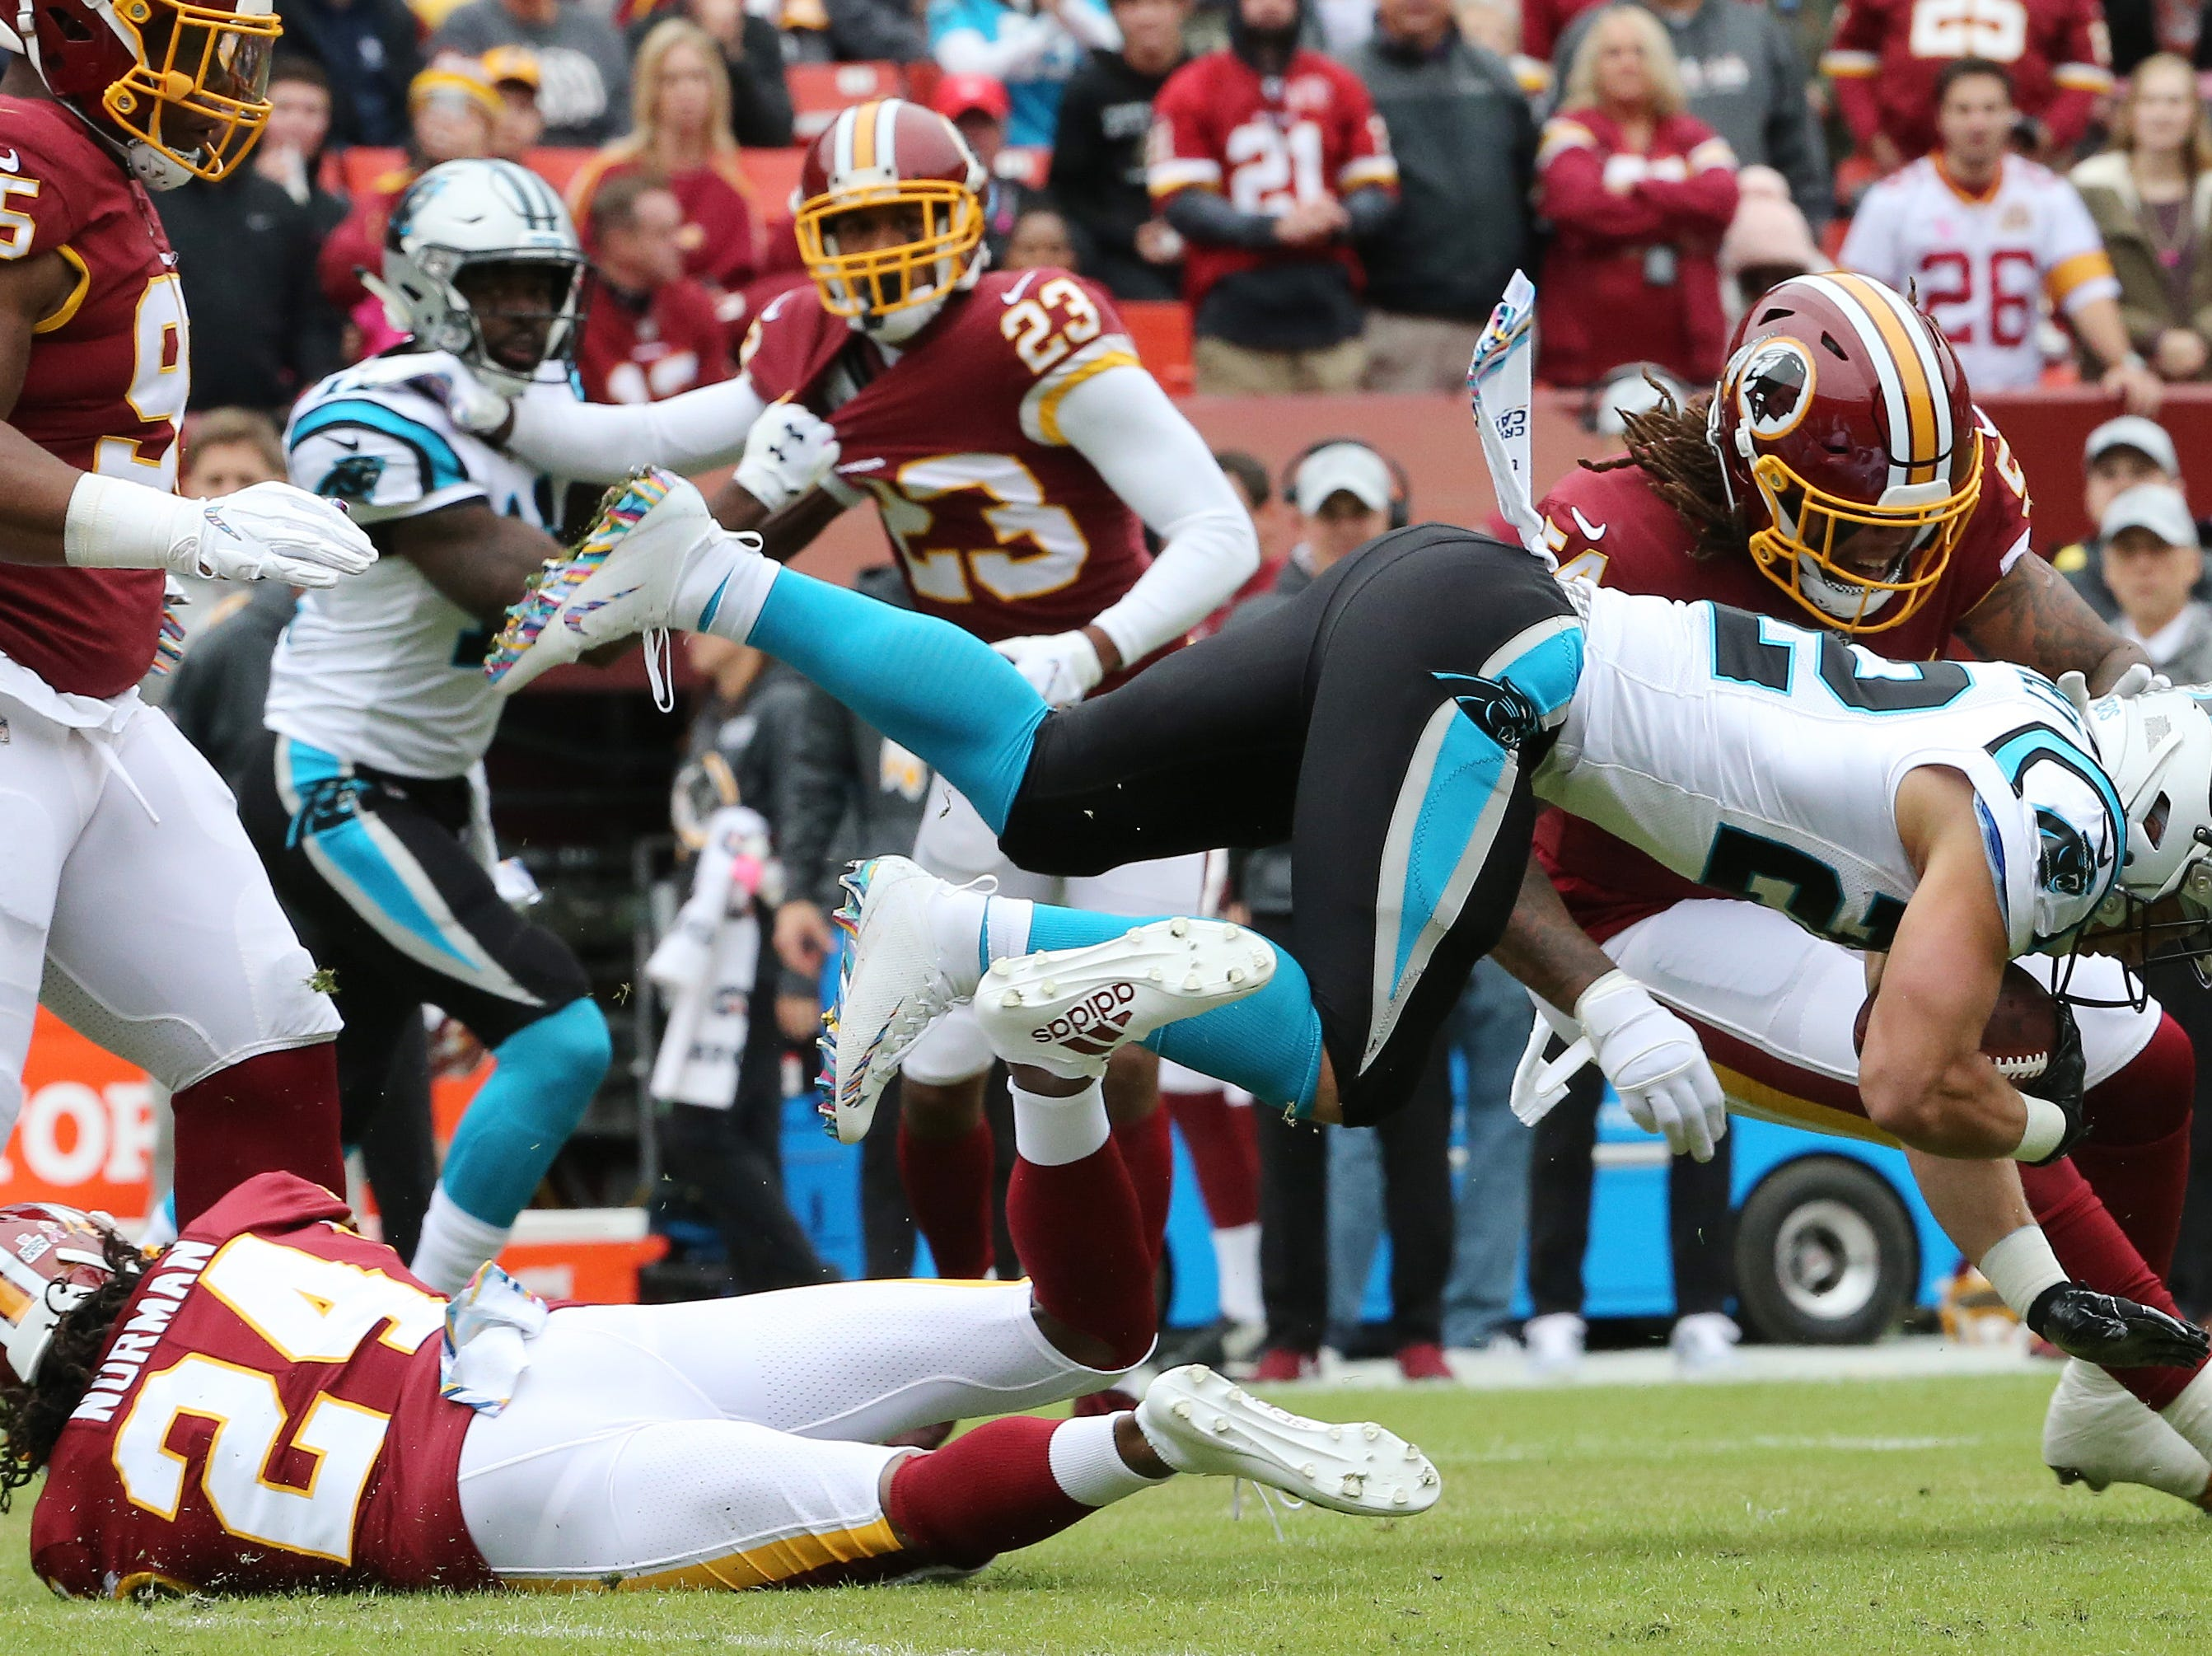 Carolina Panthers running back Christian McCaffrey (22) is tackled by Washington Redskins cornerback Josh Norman (24) in the first quarter at FedEx Field.